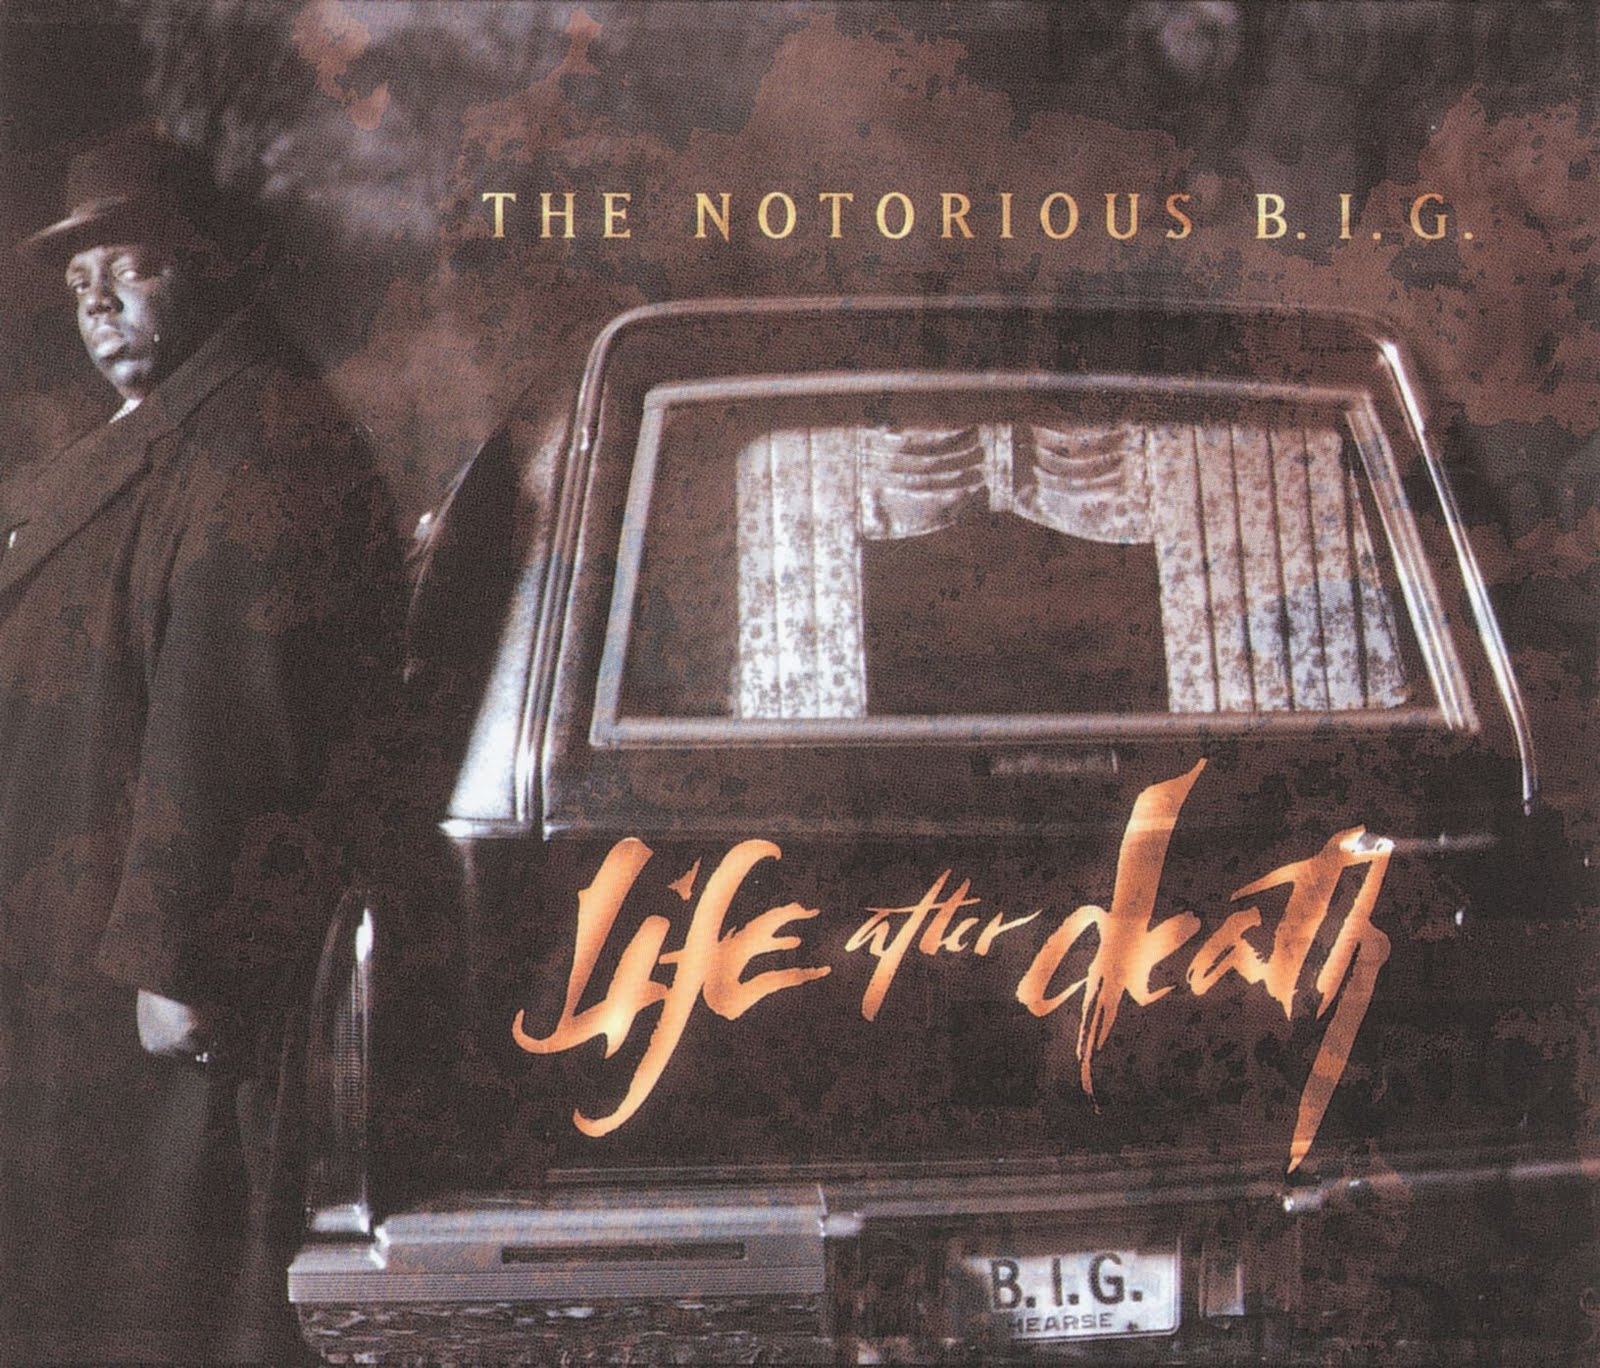 Think, that biggie life after death you